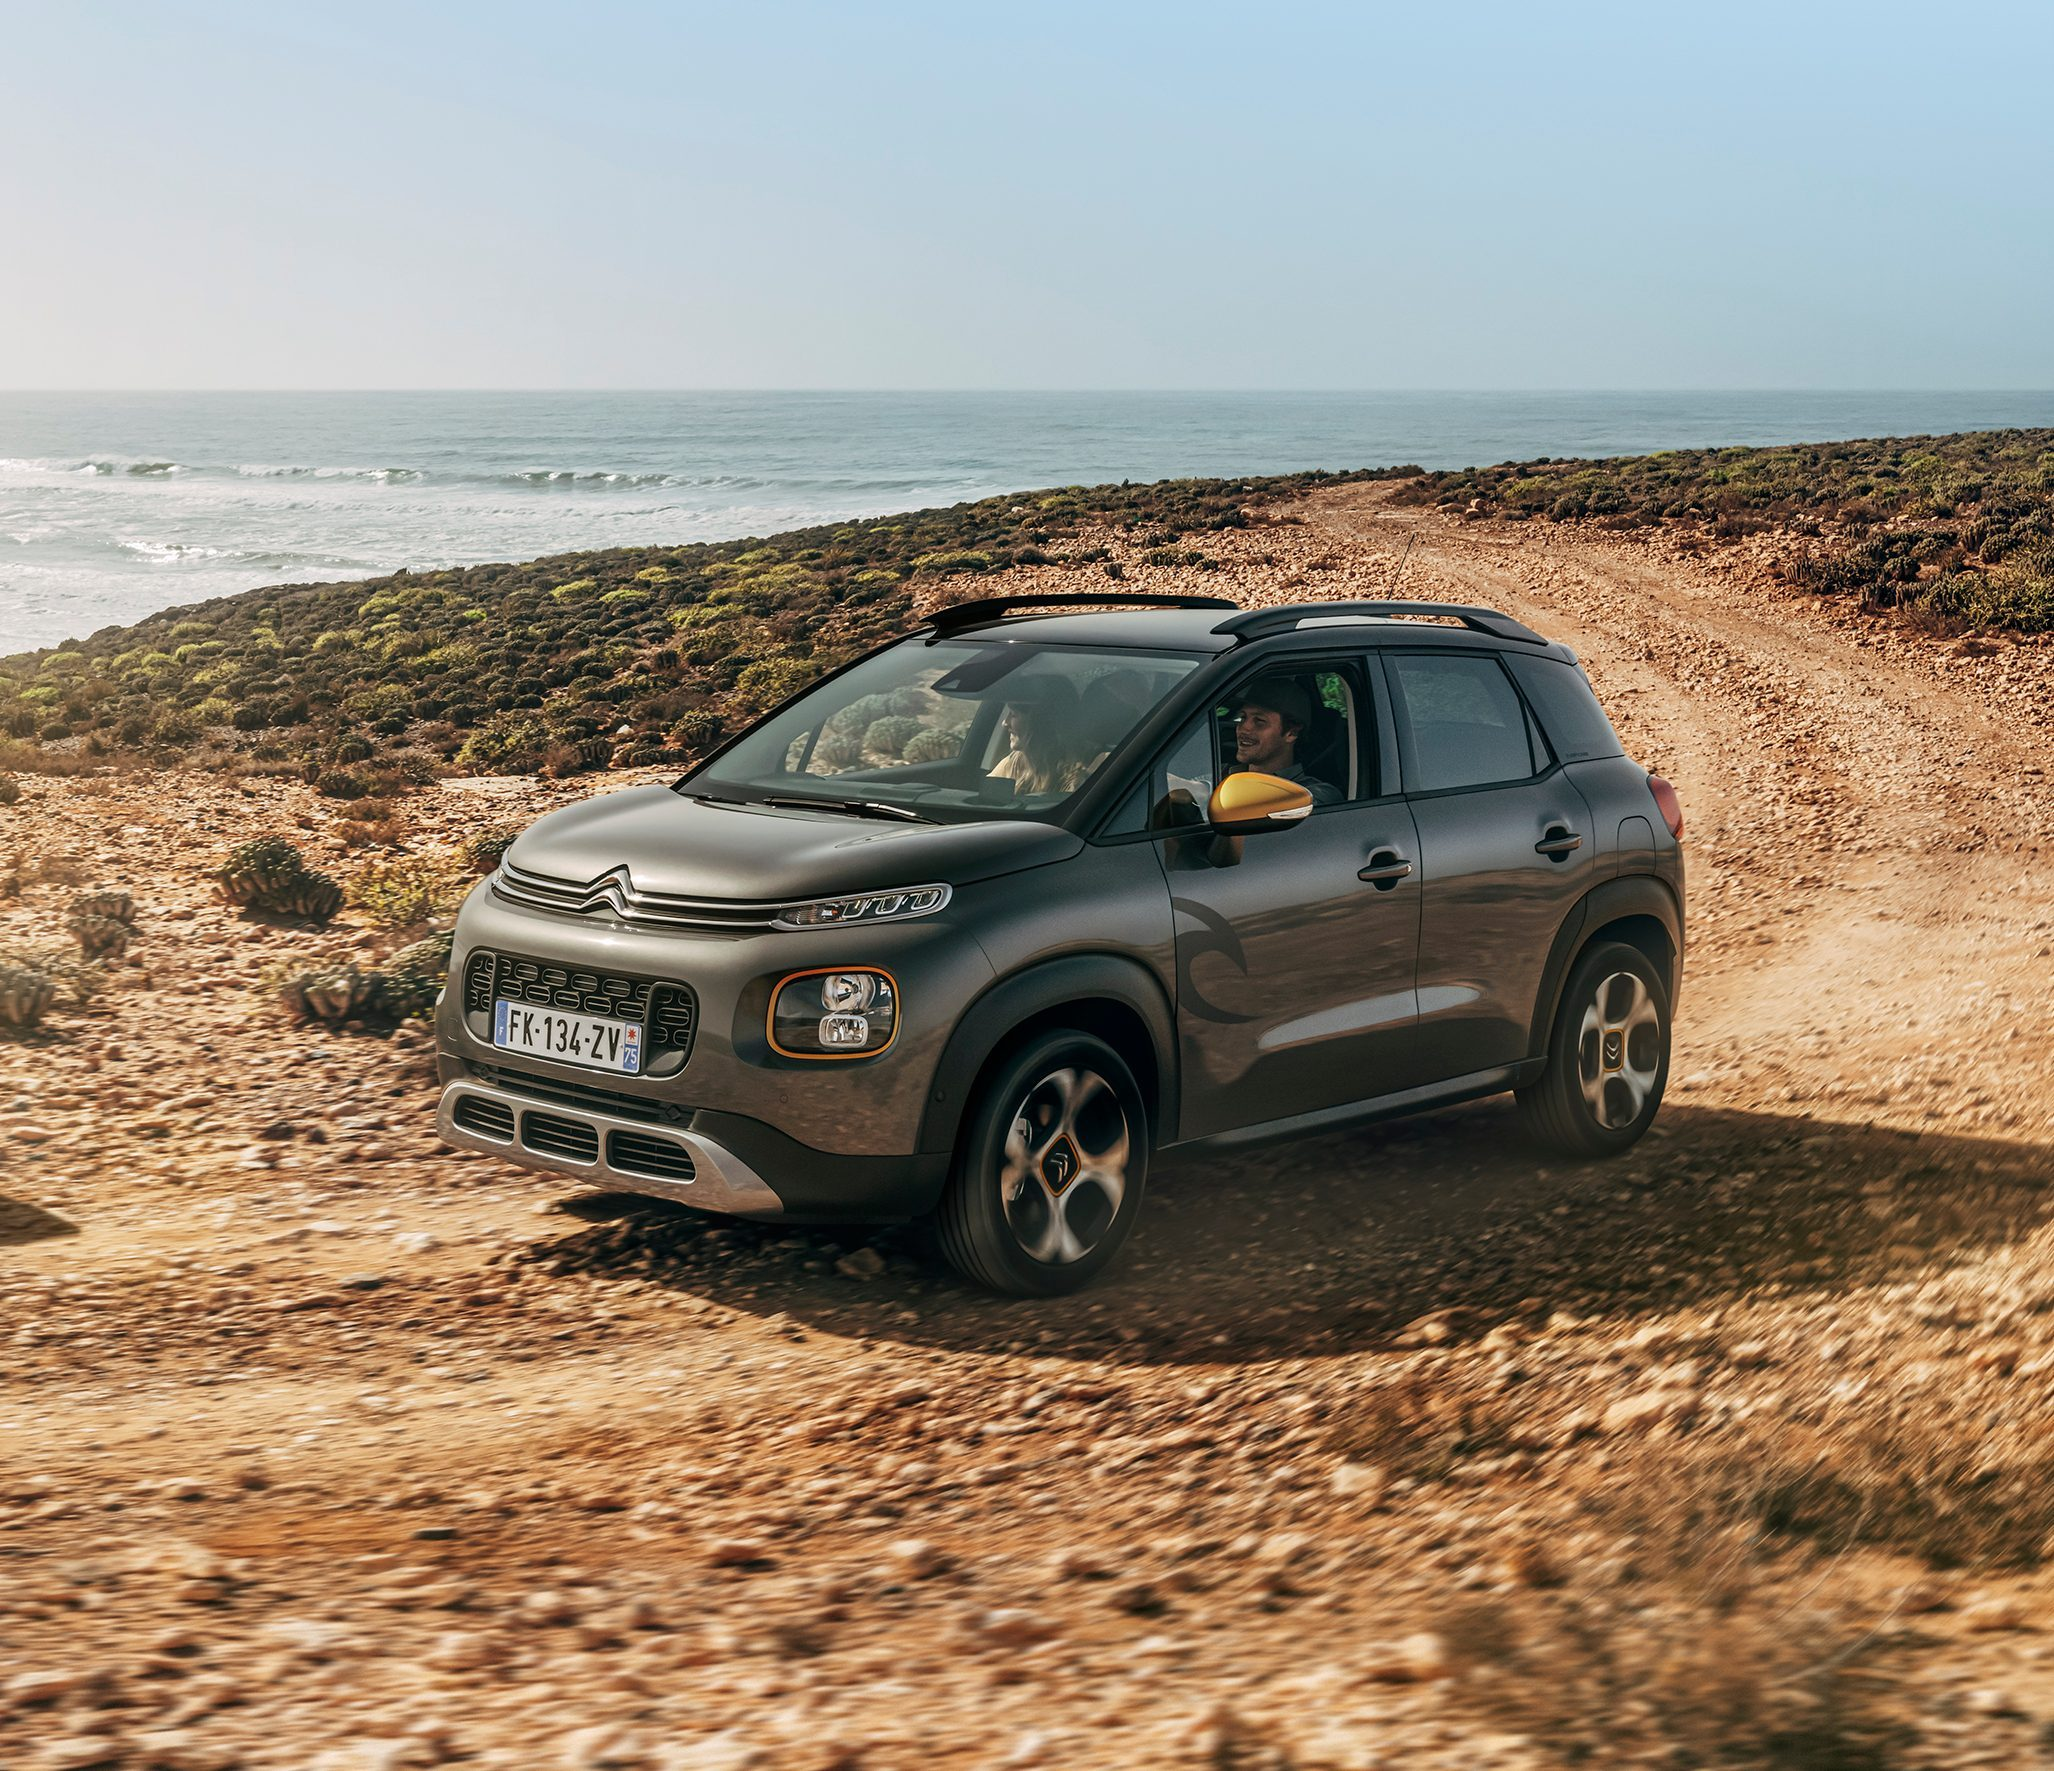 Citroen has teamed up with surf brand Rip Curl for this special that's trendier than TikTok